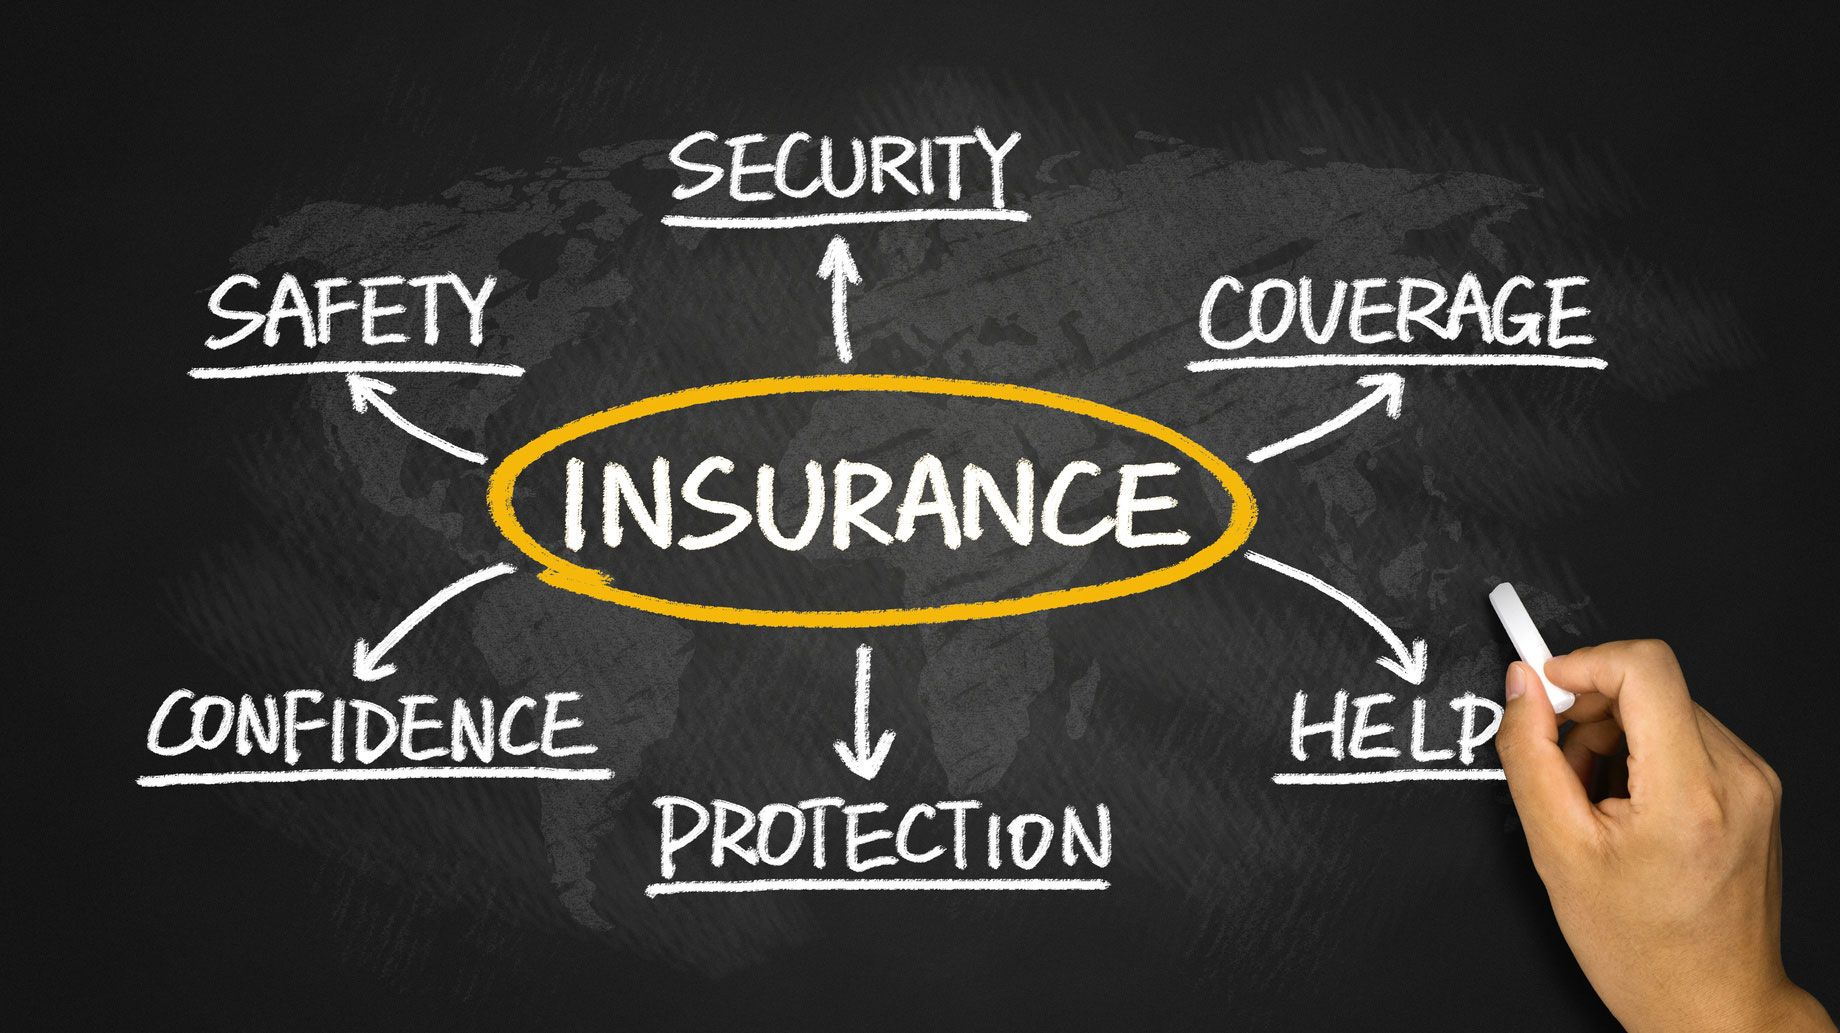 Insurance Car Insurance Company Insurance Logo Insurance Health